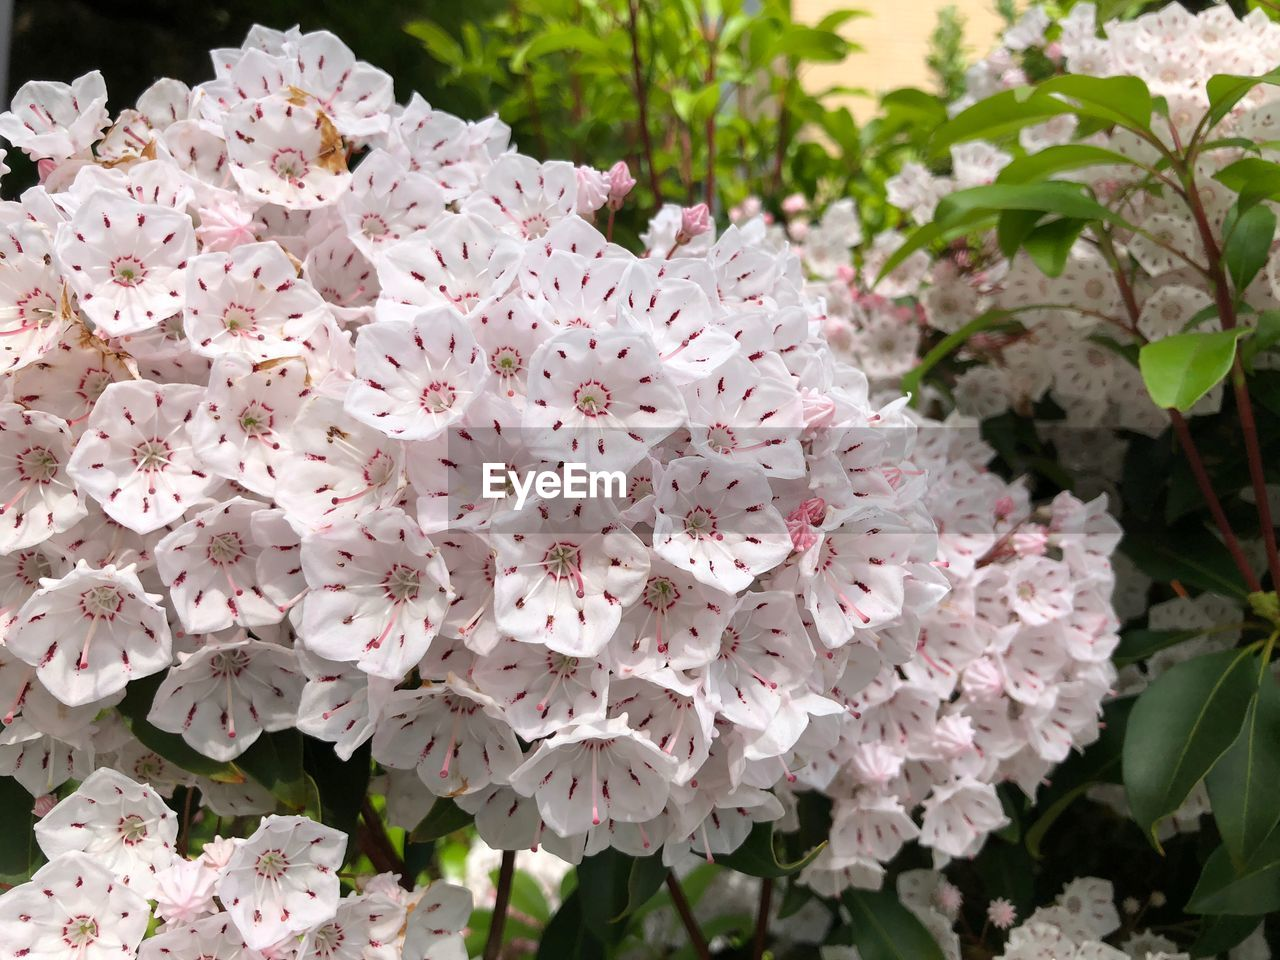 flower, flowering plant, beauty in nature, plant, vulnerability, fragility, petal, freshness, growth, close-up, nature, plant part, leaf, inflorescence, pink color, flower head, blossom, day, no people, botany, outdoors, springtime, pollen, lilac, bunch of flowers, spring